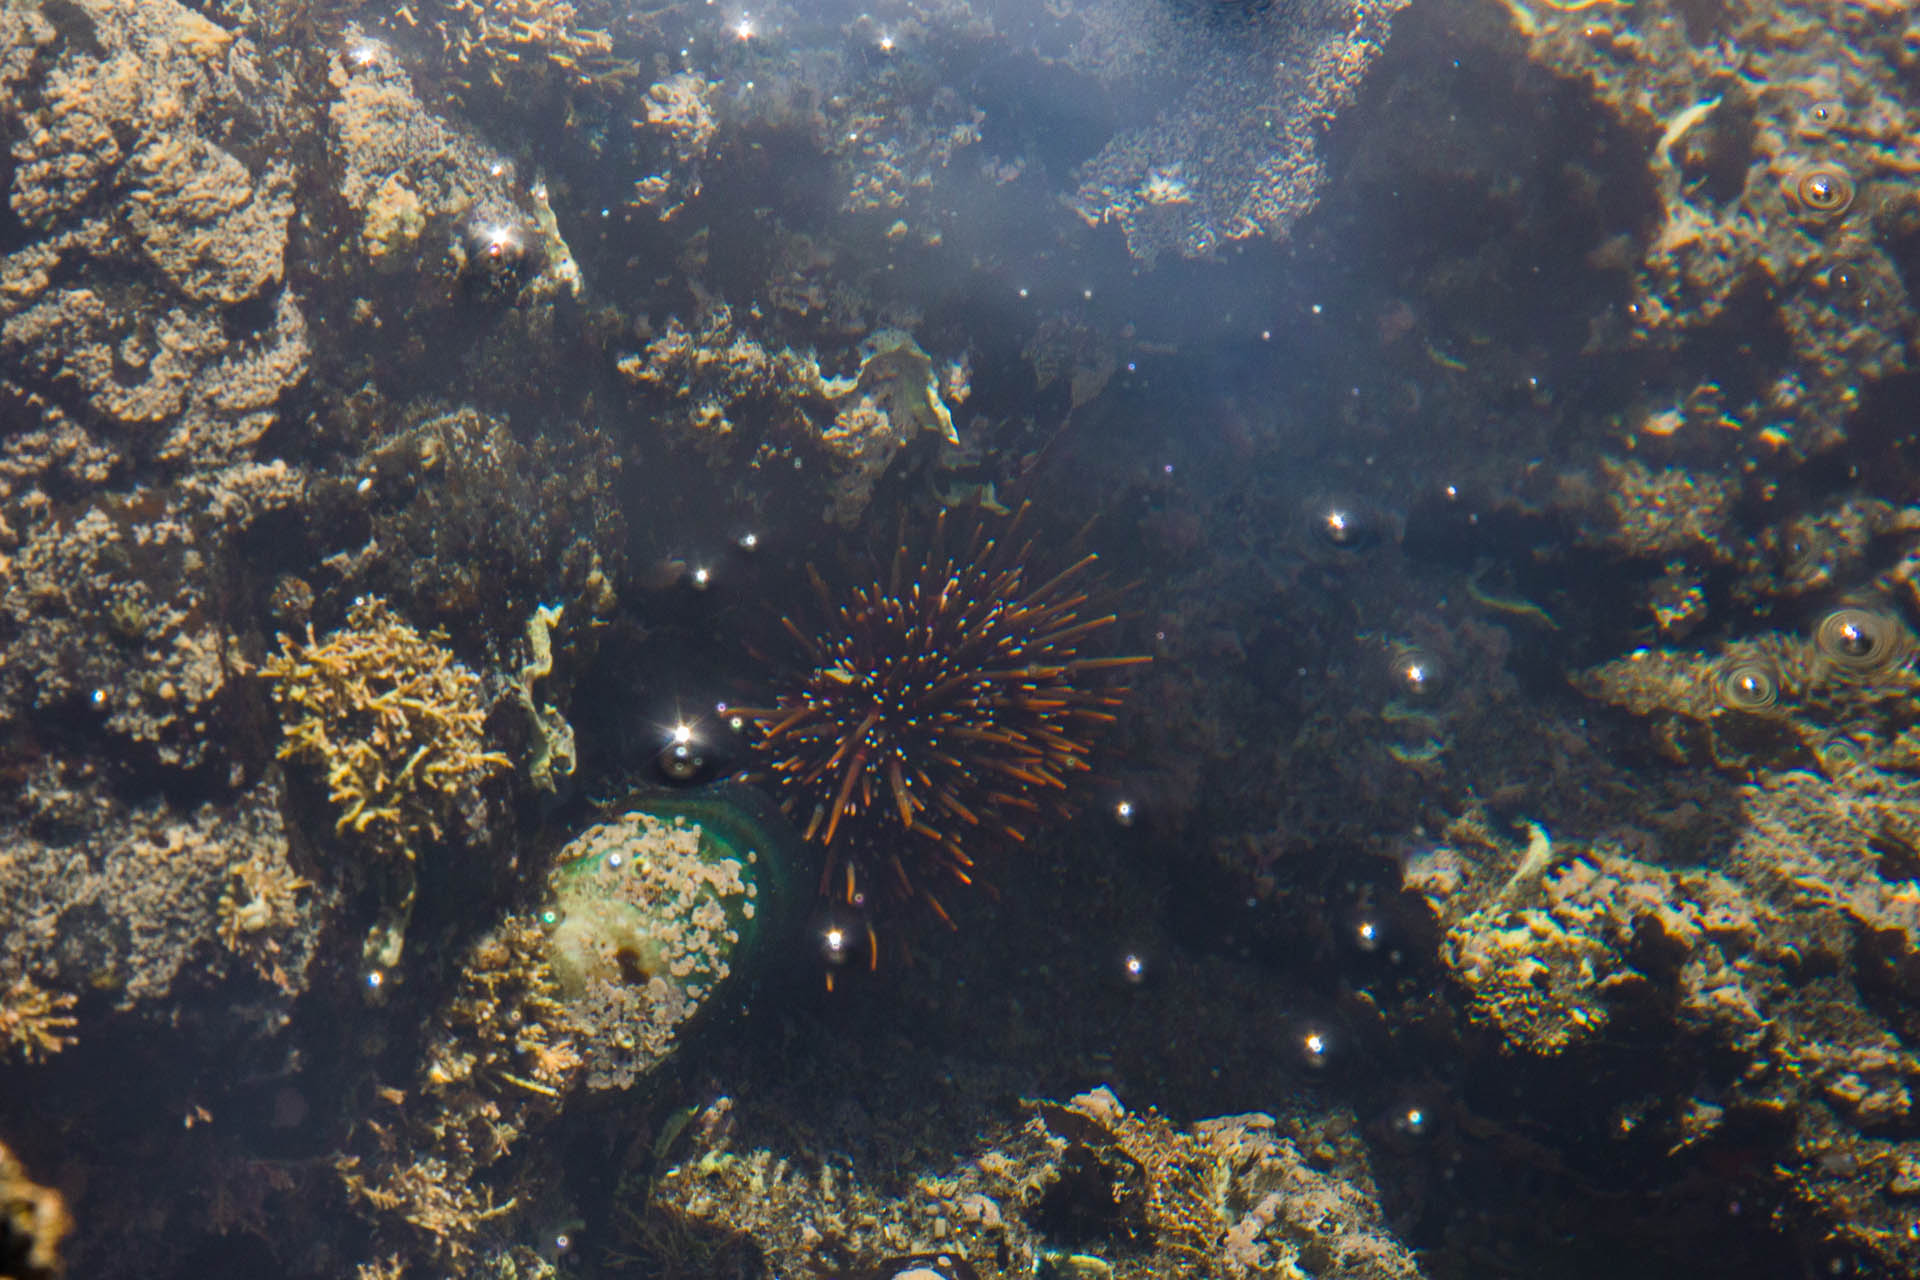 kina sea urchin submerged in new zealand tide pool